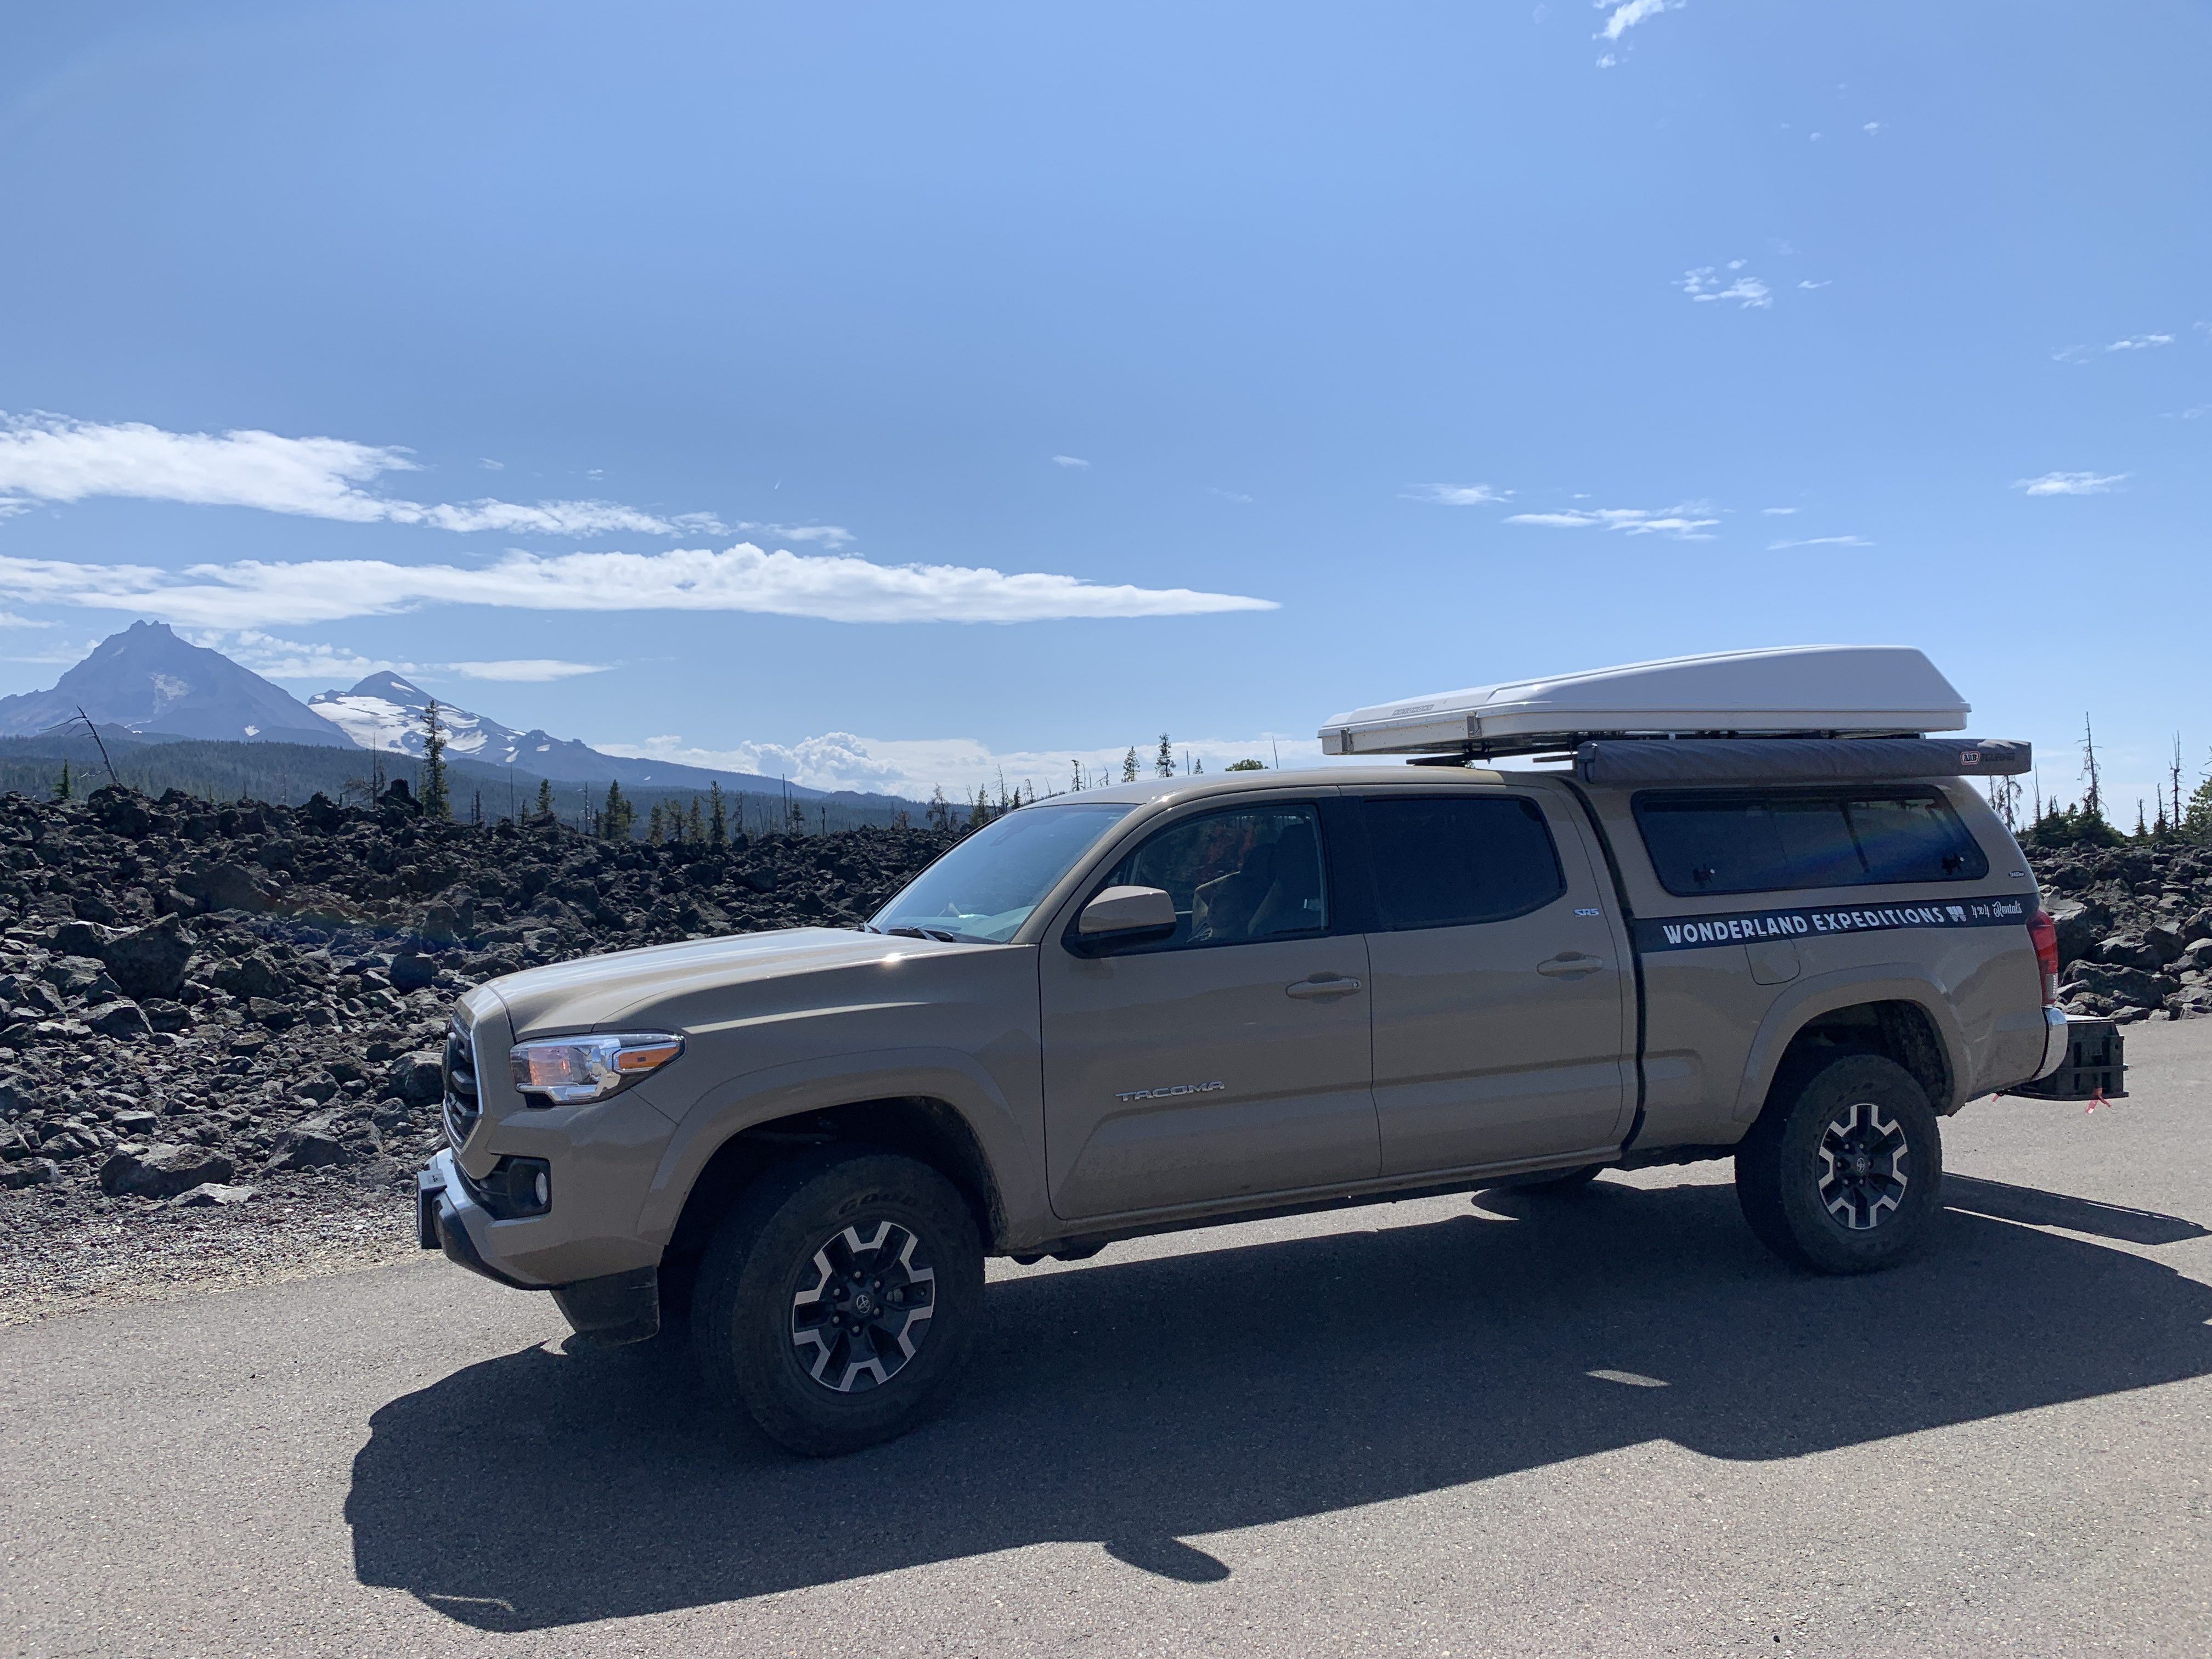 Adventure Kings Roof Top Tent Weight wonderland expeditions bandit review